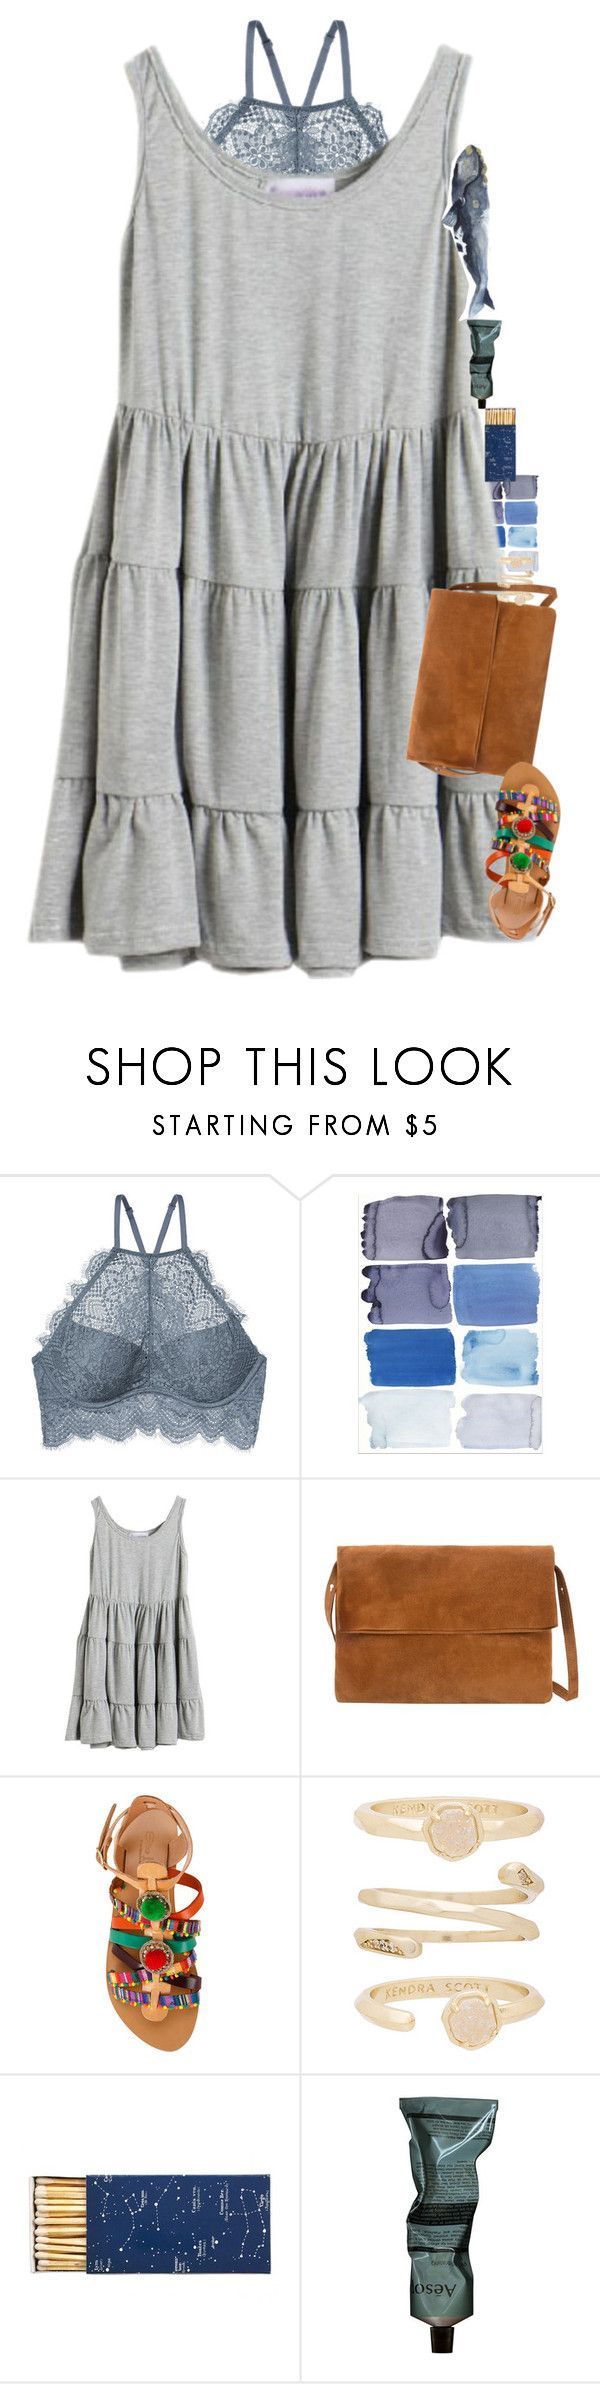 """My cat is licking my salad bowl"" by mac-moses ❤ liked on Polyvore featuring MANGO, Elina Linardaki, Kendra Scott, Jayson Home and Aesop"